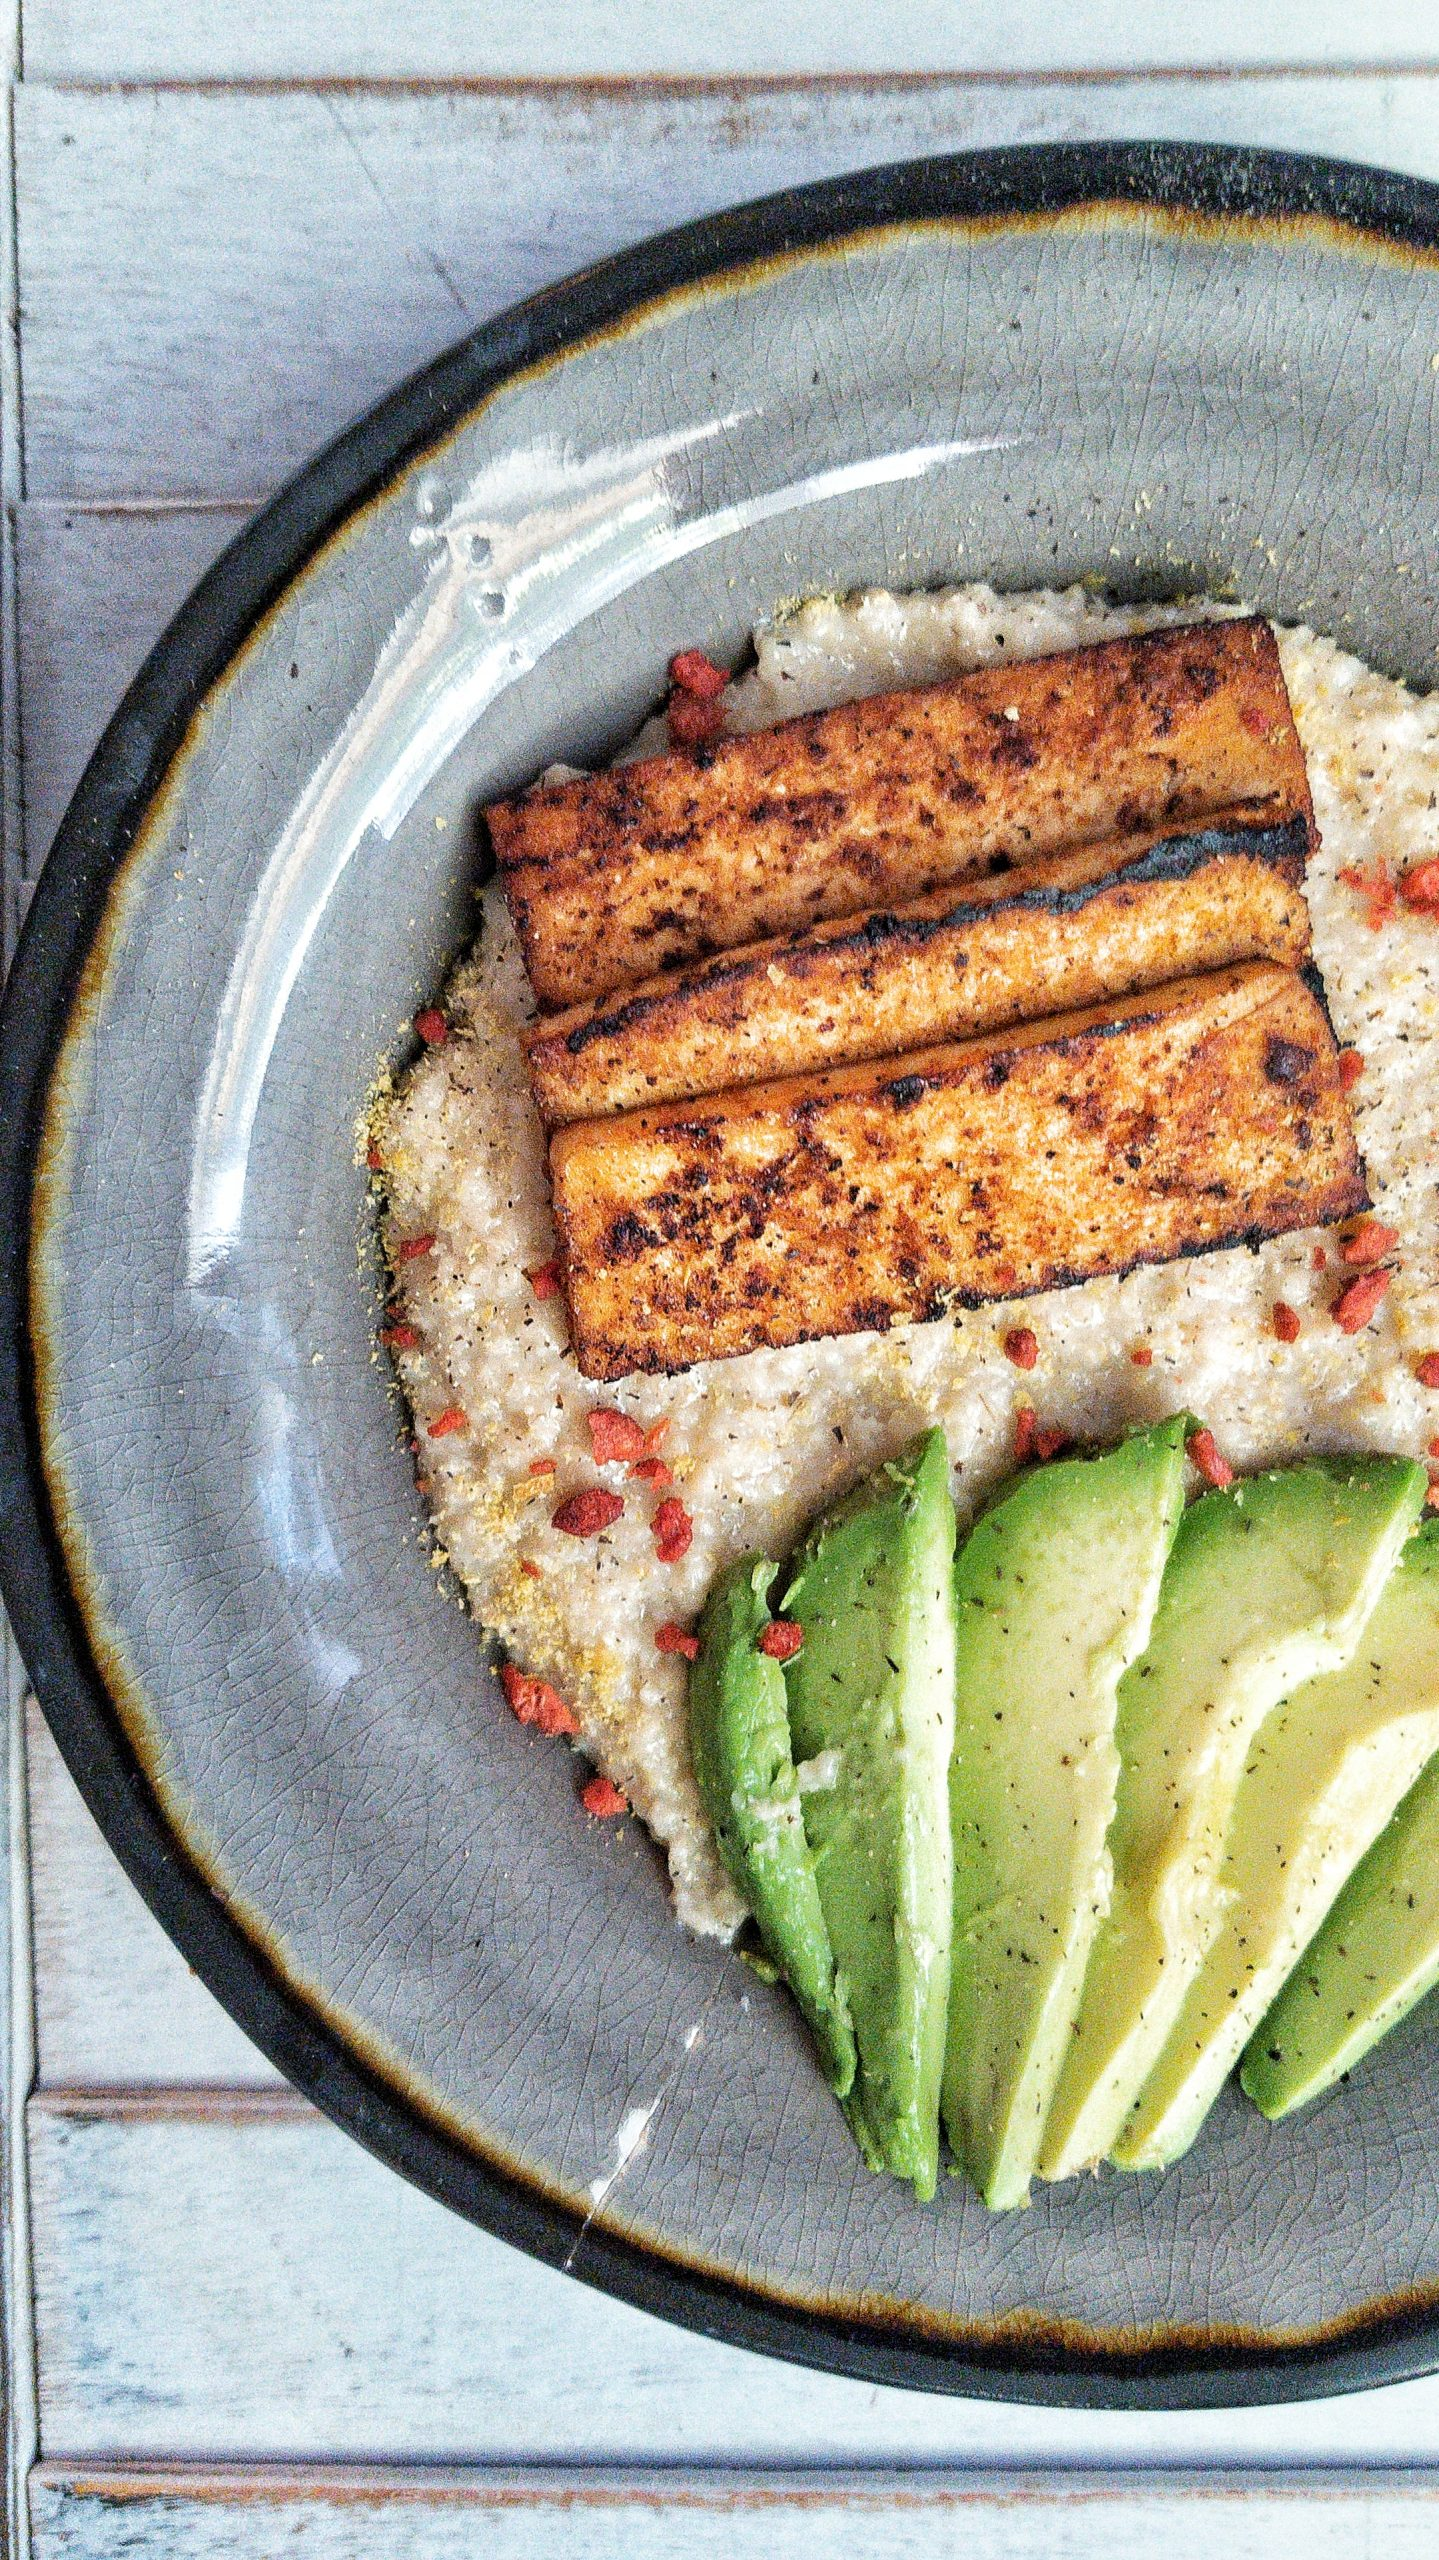 Oat bran with tofu and sliced avocado